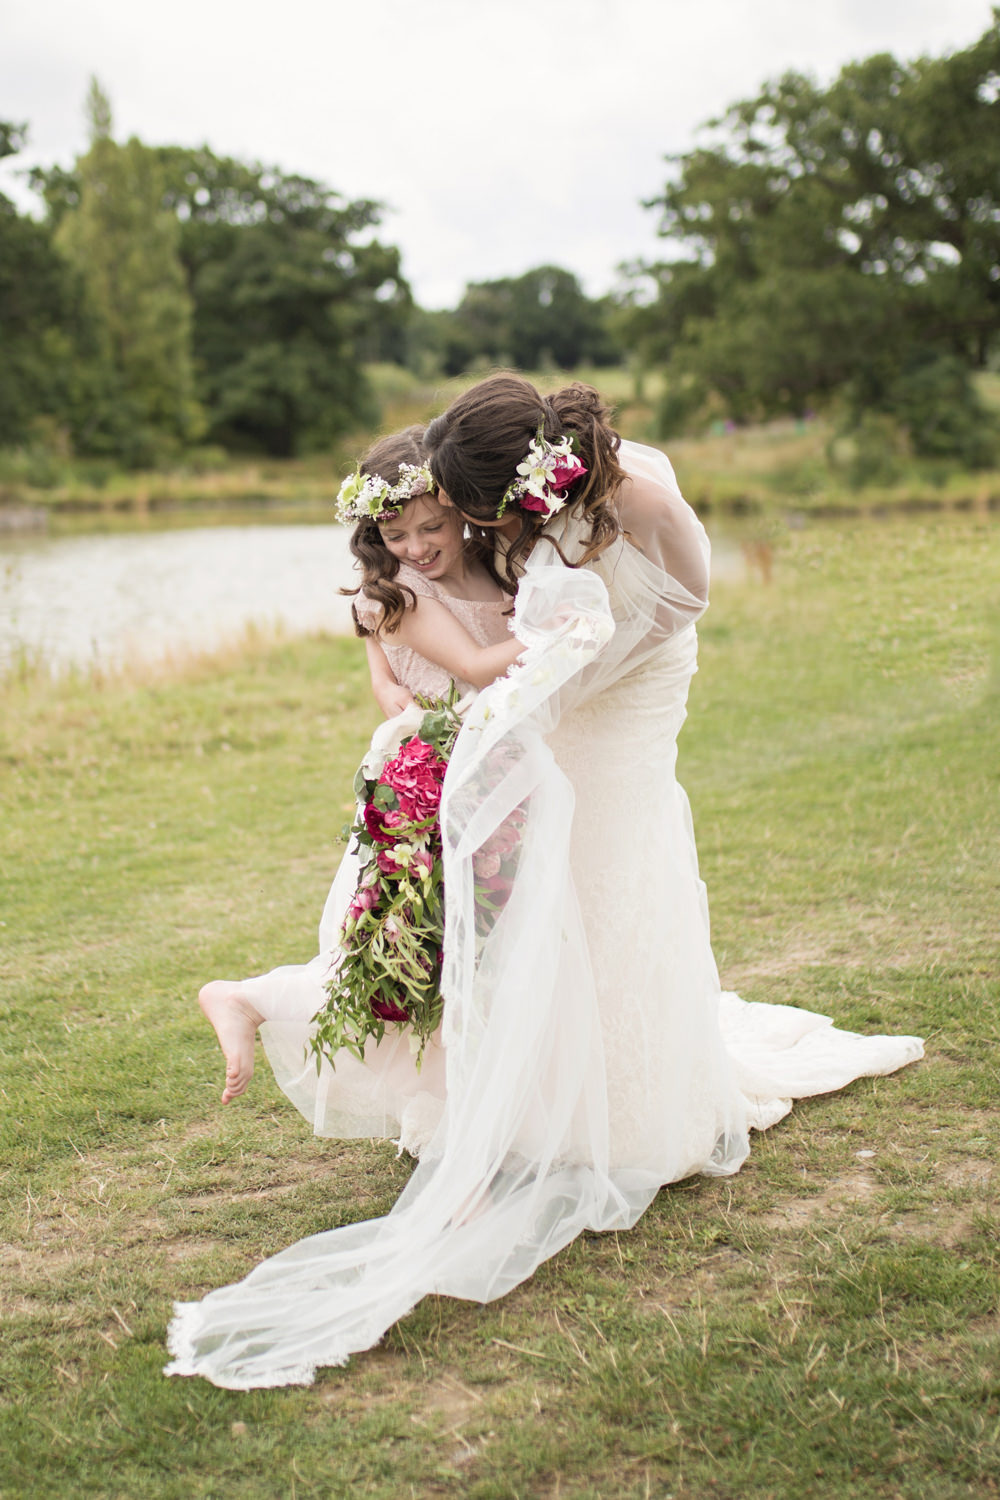 Flower Girl Bride House Meadow Wedding Kerry Ann Duffy Photography